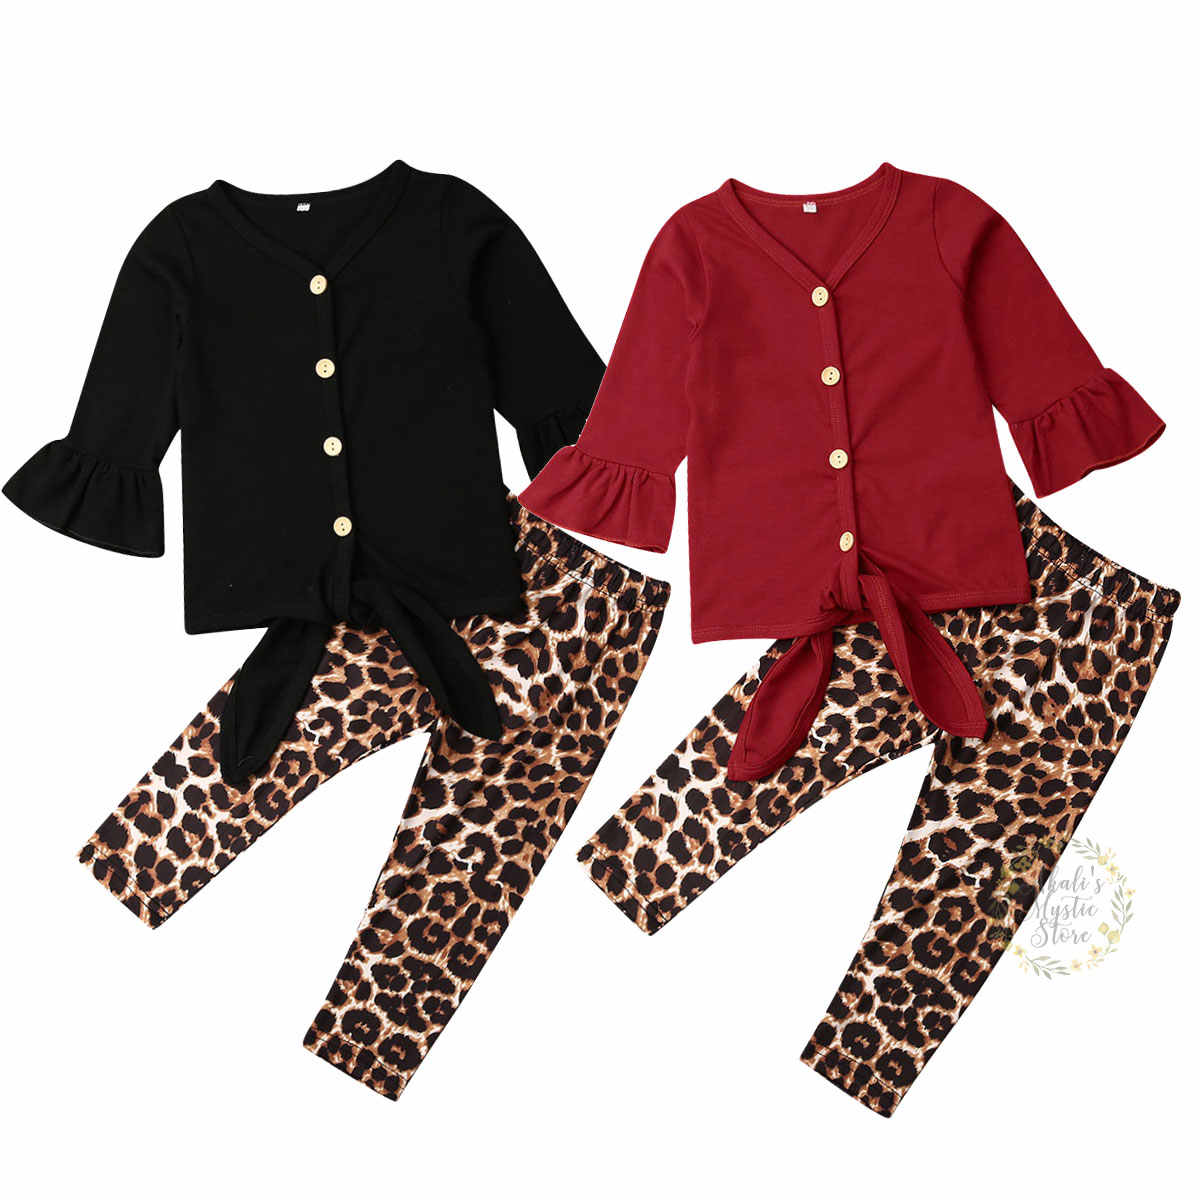 1-6Years Toddler Baby Kid Girls Clothing Set Long Sleeve T-shirt Tops Leopard Legging Pants Outfits Tracksuit Autumn Spring